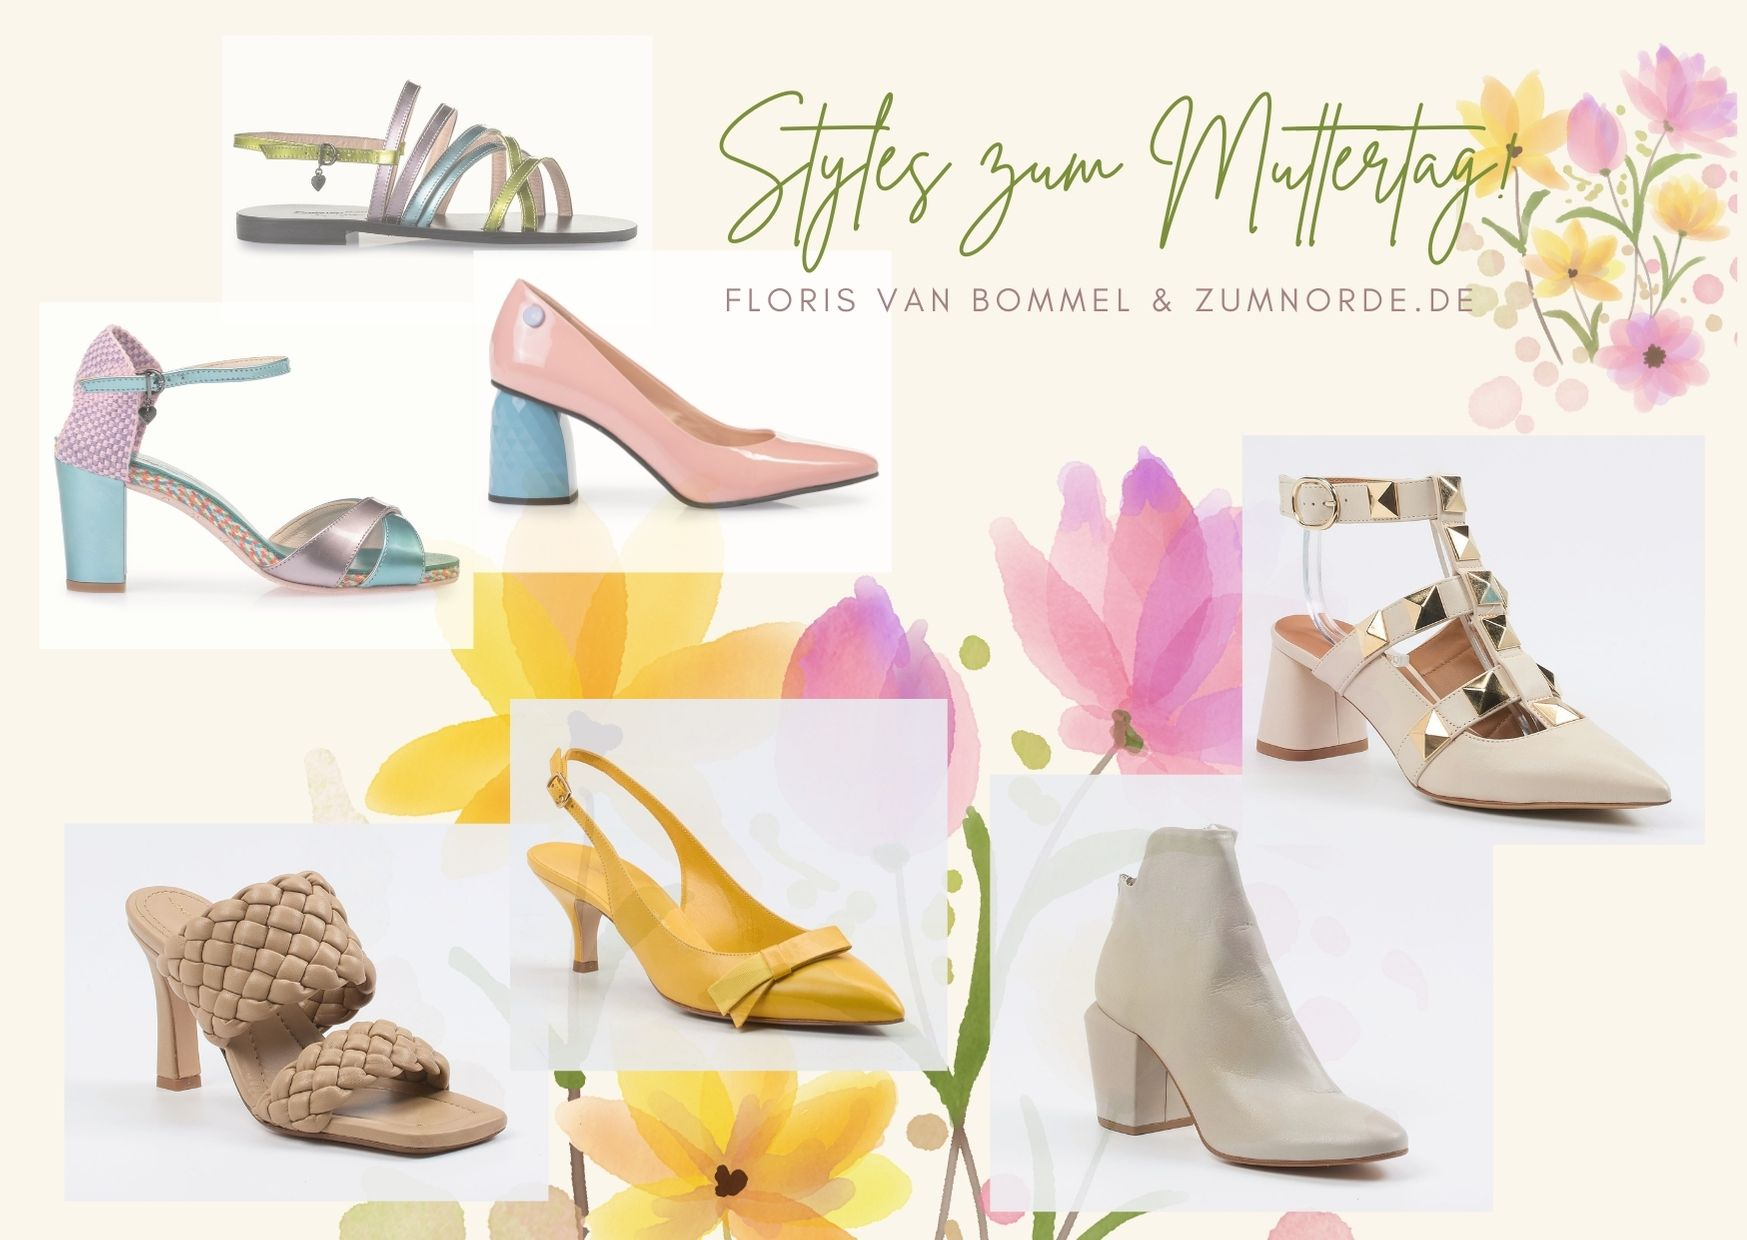 Introimage : Mother's Day Greetings with seasonal Shoe-Styles